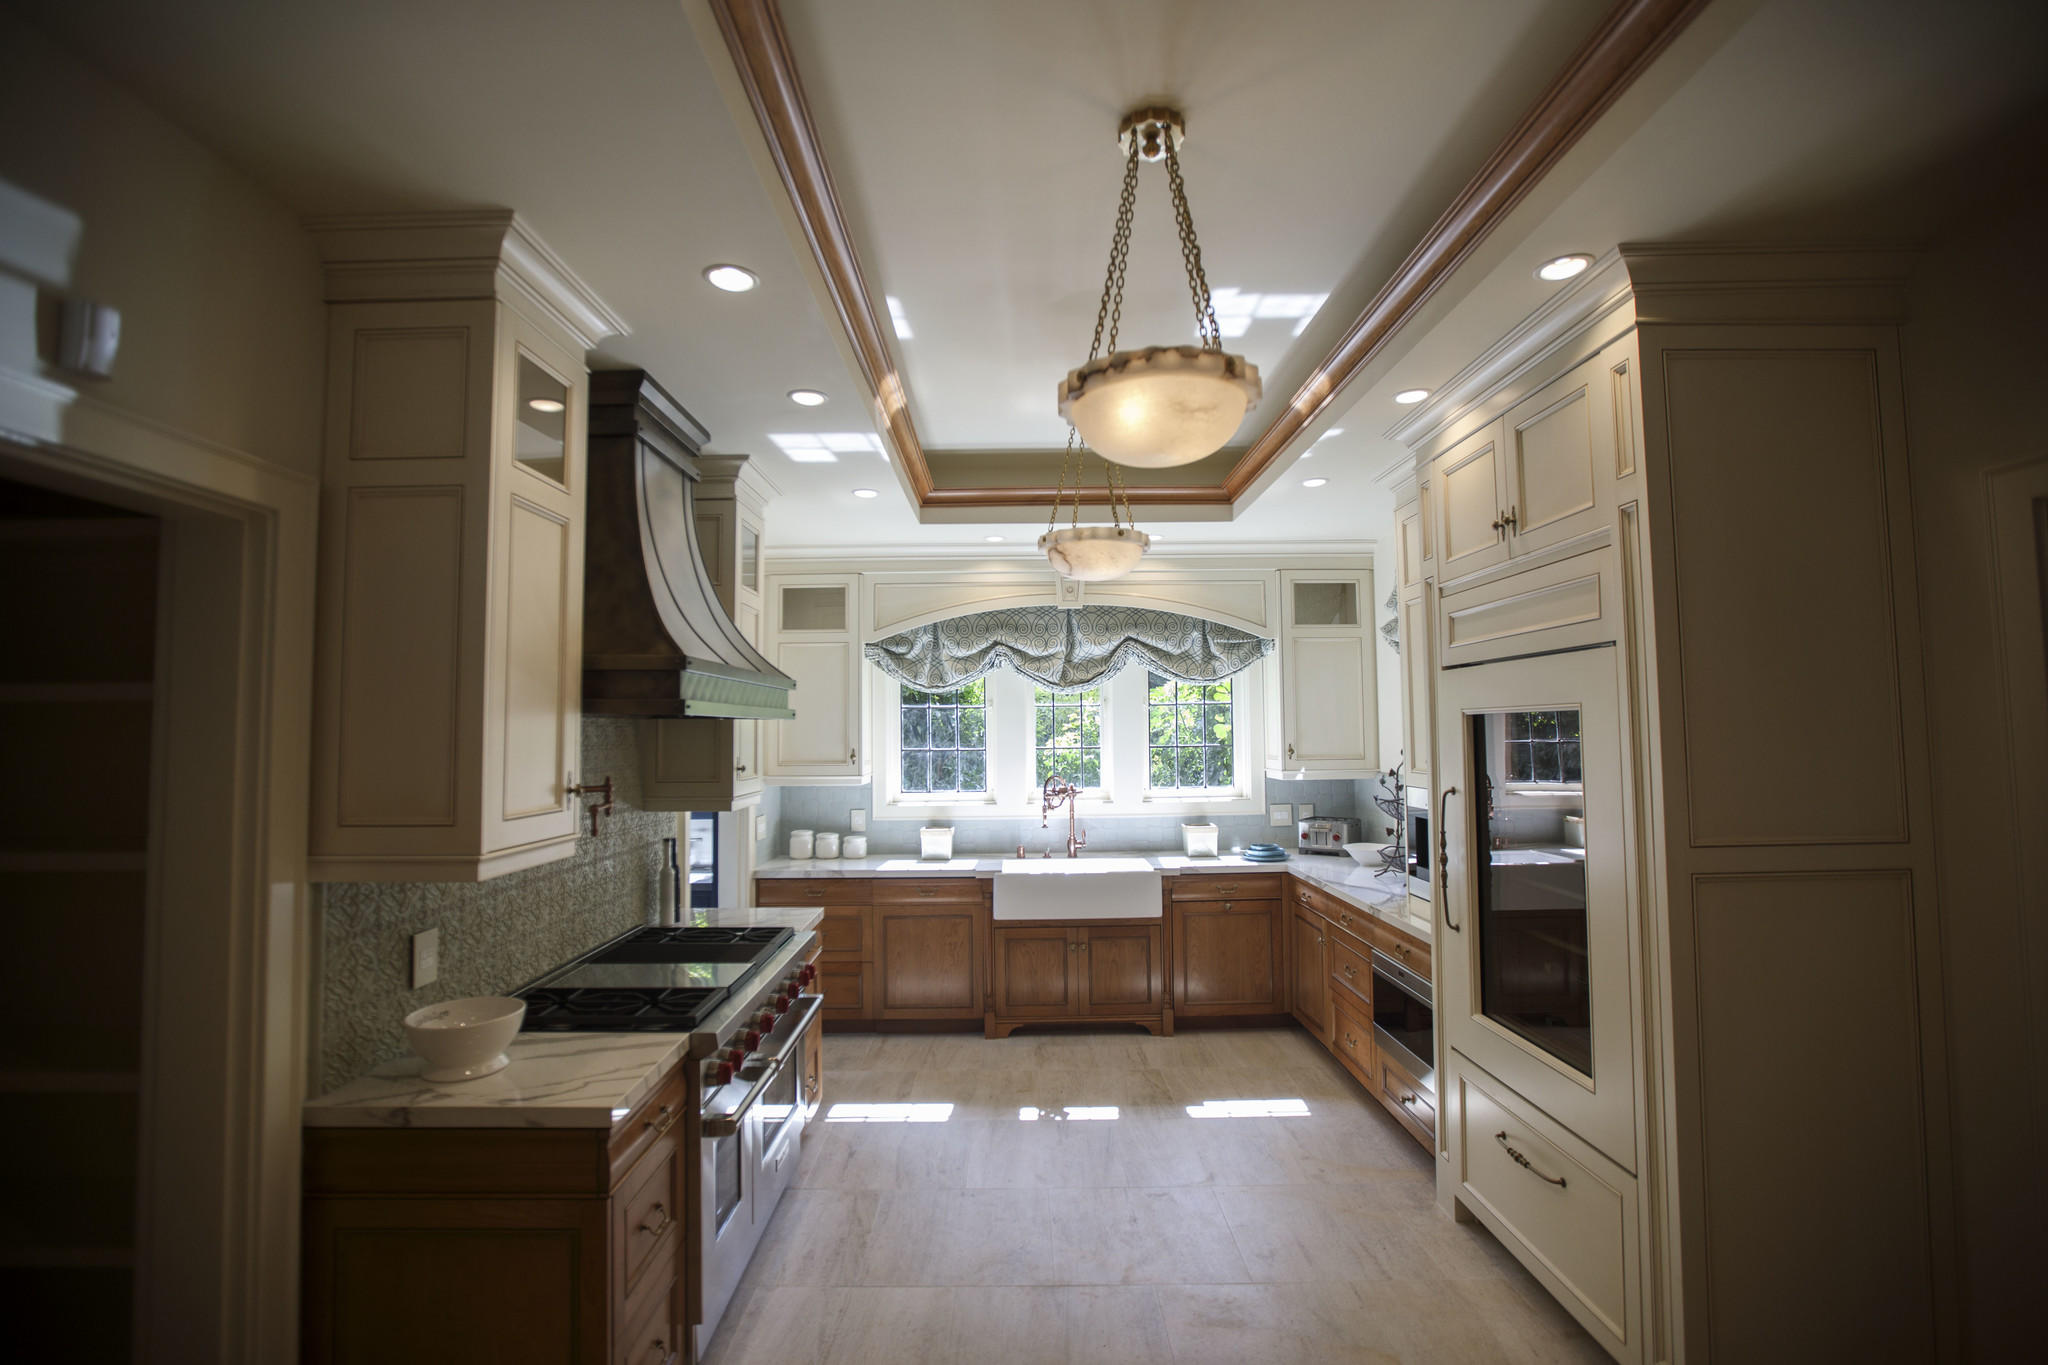 The kitchen by D Christjan Fine Cabinetry Design & Manufacturing, after renovations.